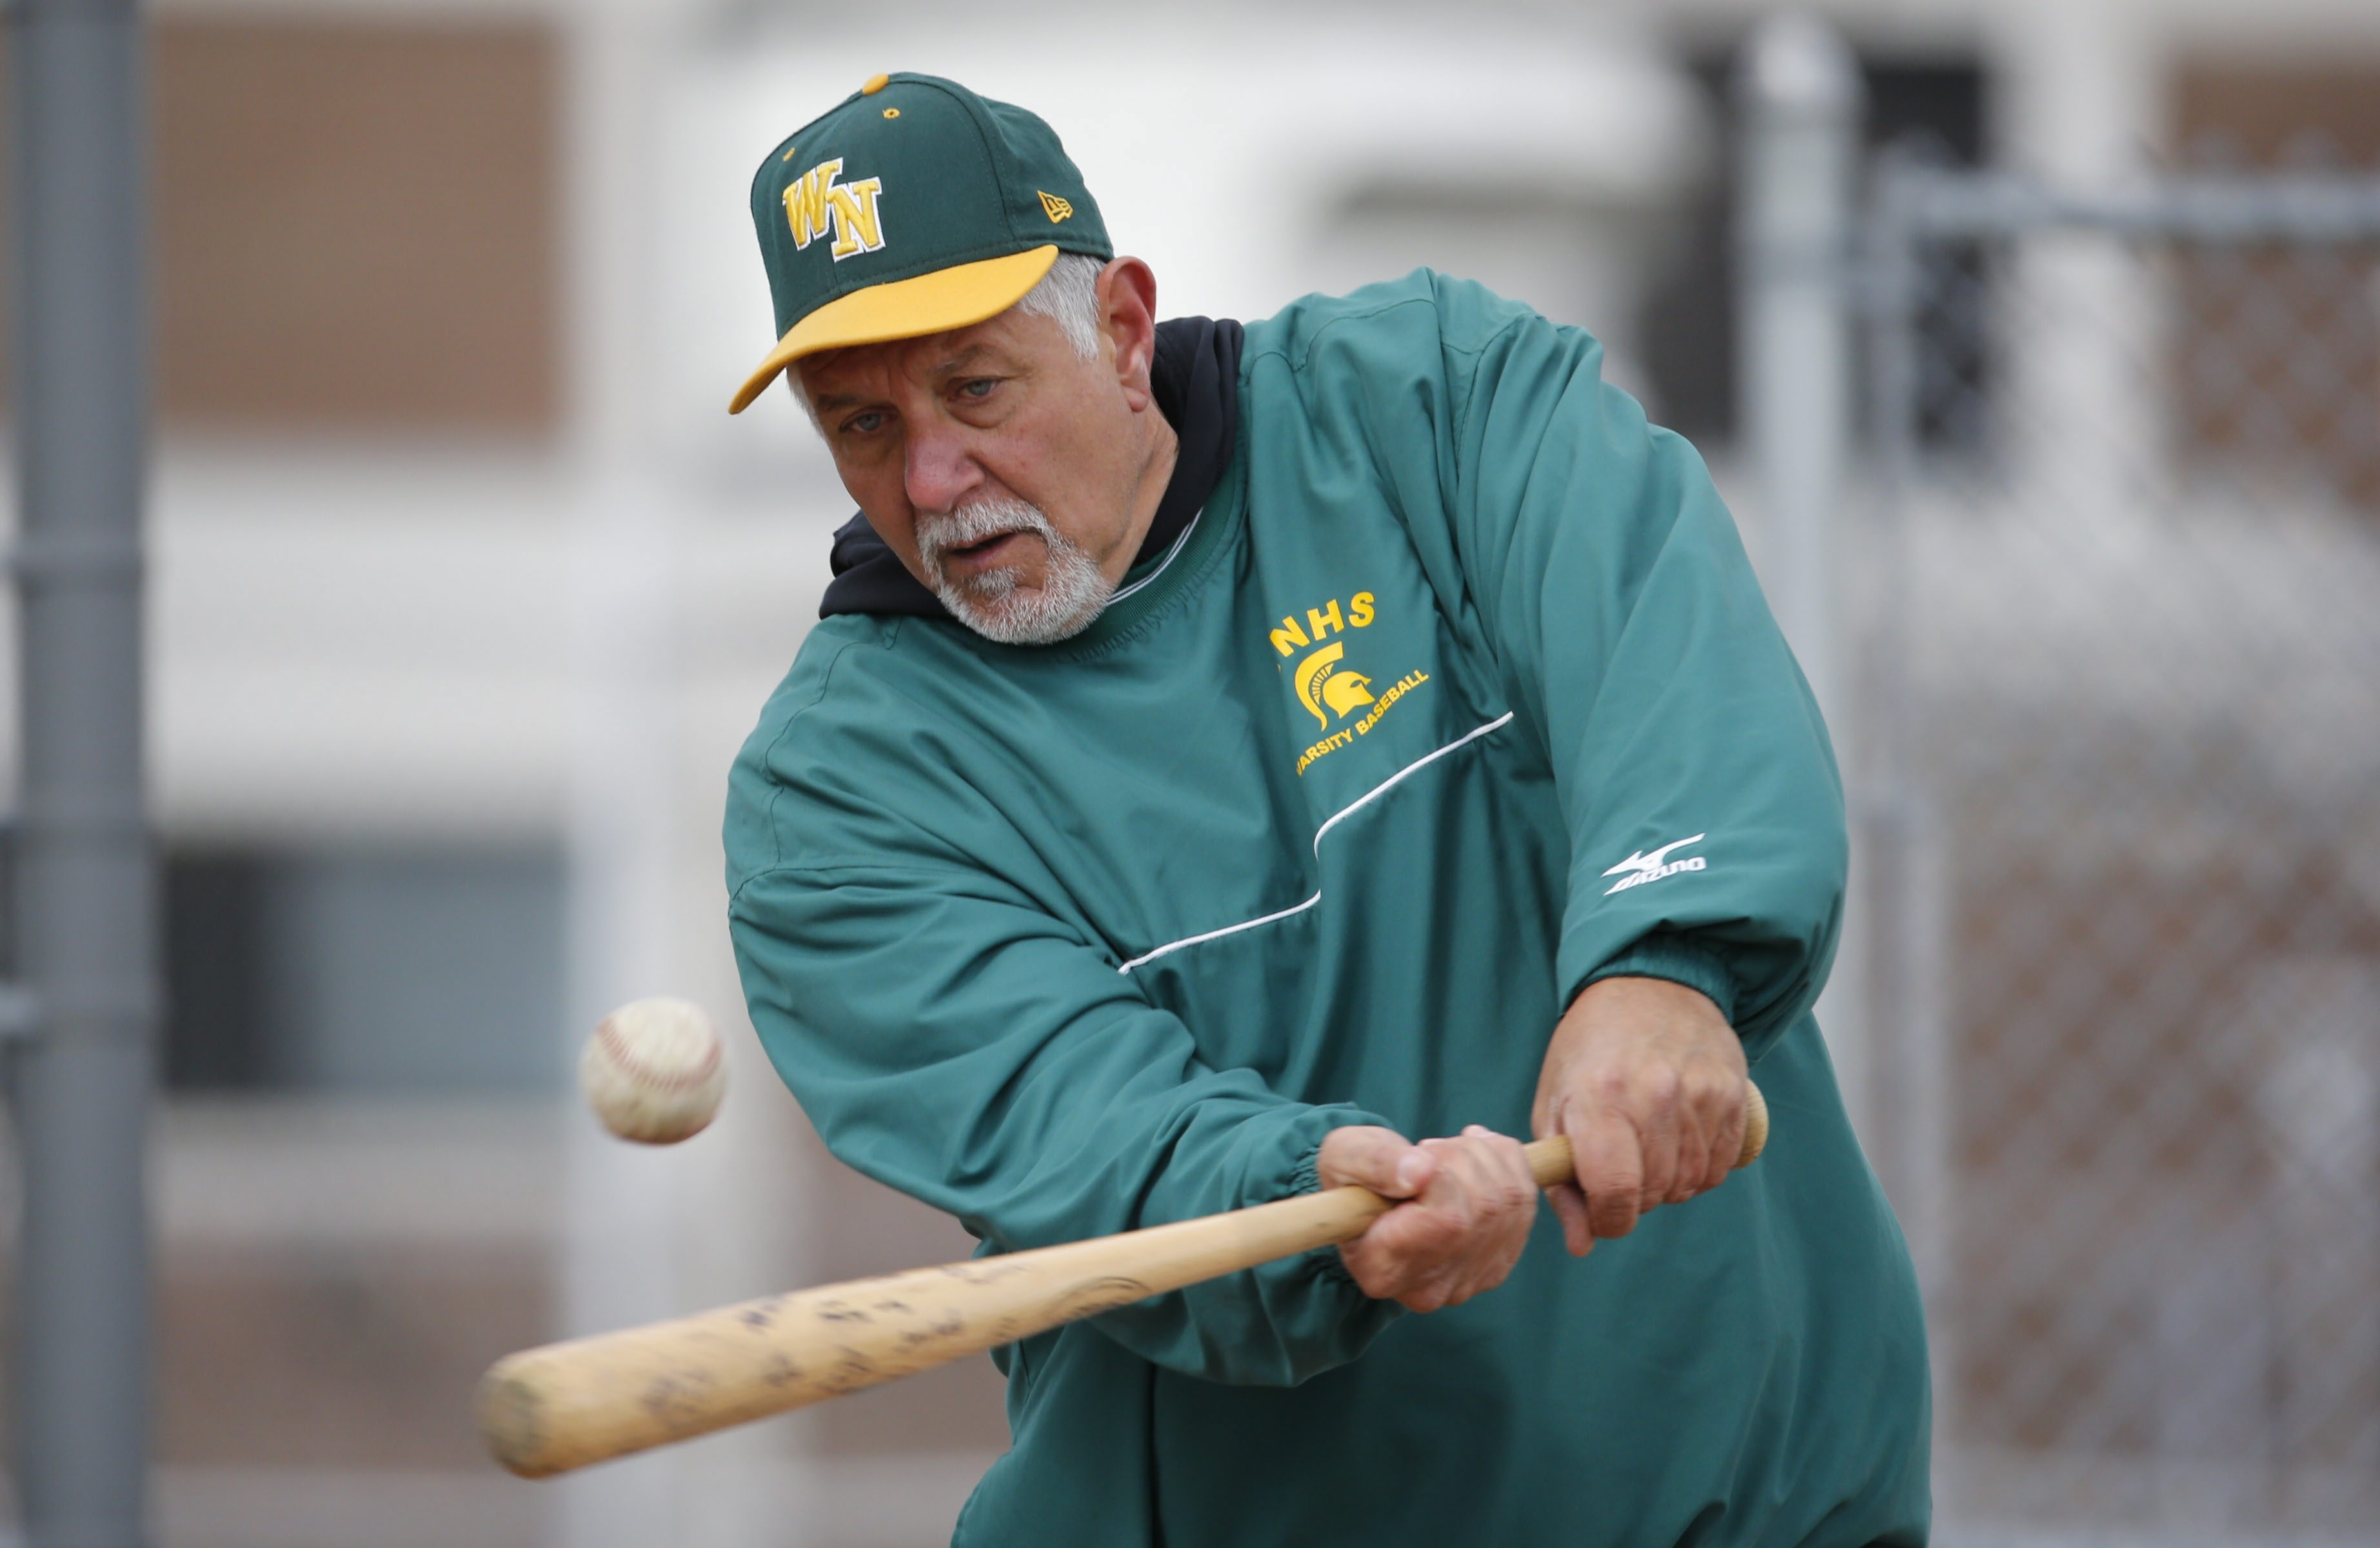 Williamsville North coach Jerry Scarcella played with teams in the Cheektowaga Classic and Muny AAA after moving to the area.